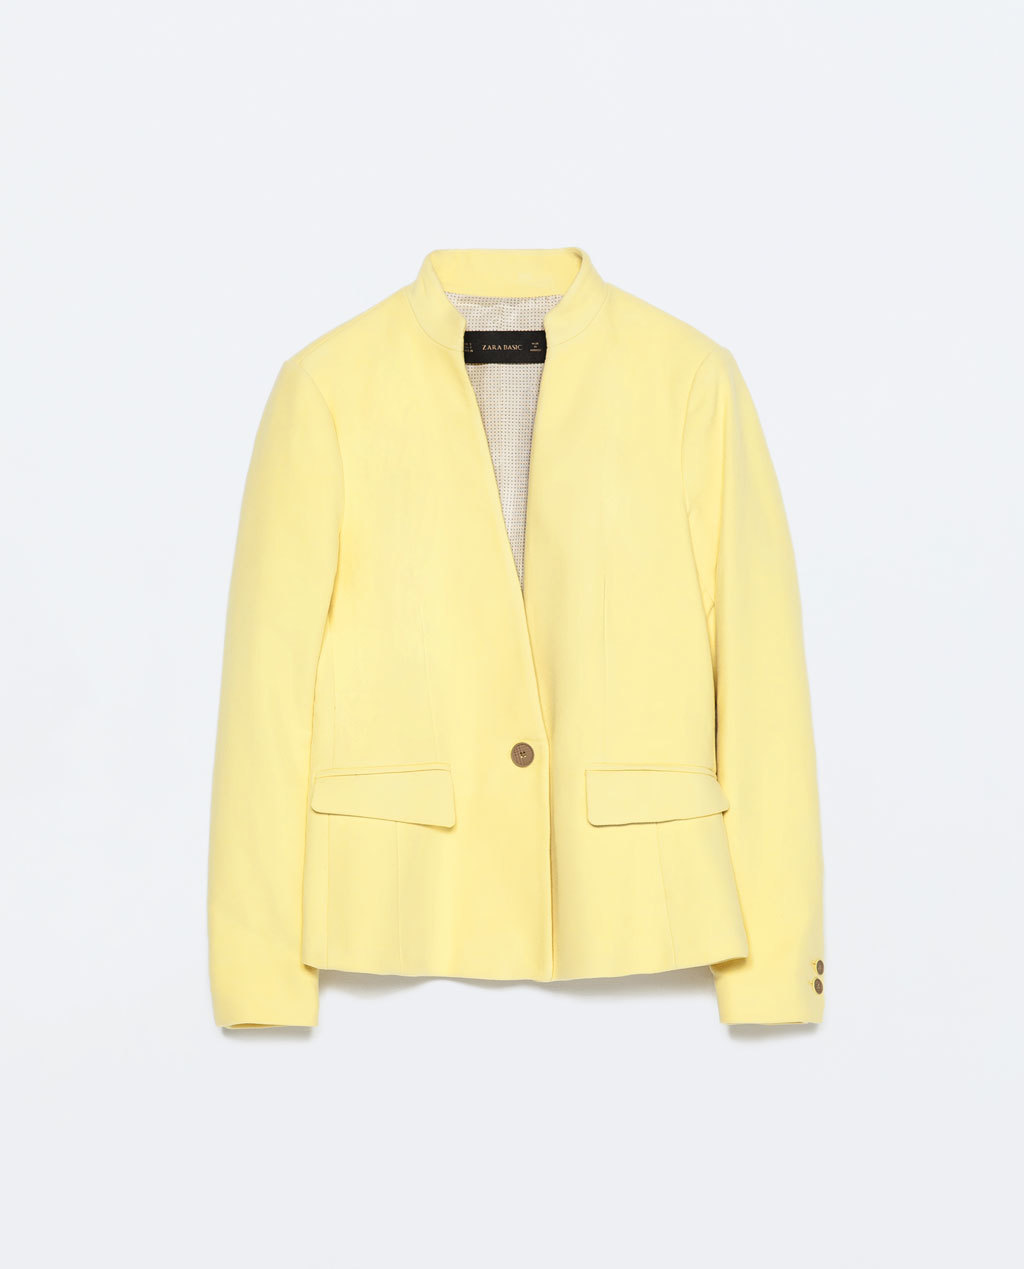 Velveteen Blazer With No Lapel - pattern: plain; style: single breasted blazer; collar: round collar/collarless; predominant colour: primrose yellow; occasions: evening, creative work; length: standard; fit: tailored/fitted; fibres: polyester/polyamide - 100%; sleeve length: long sleeve; sleeve style: standard; collar break: medium; pattern type: fabric; texture group: woven light midweight; season: s/s 2015; wardrobe: investment